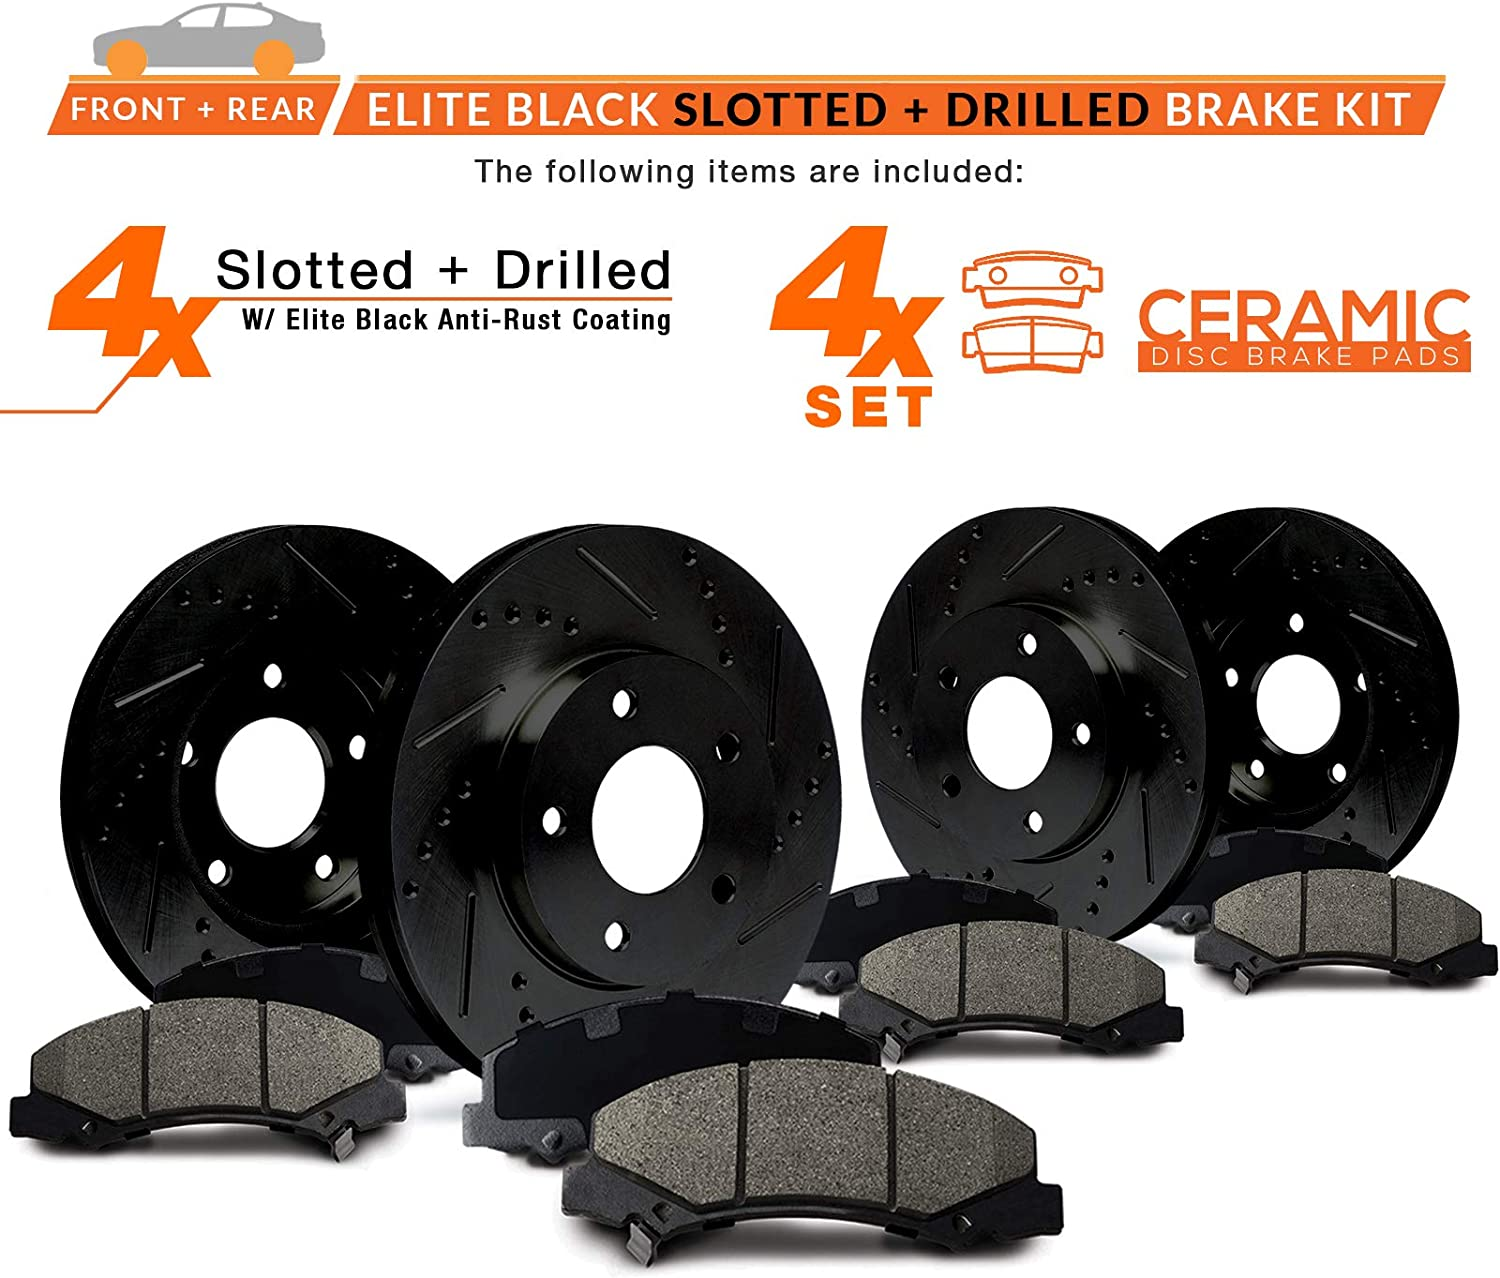 KT008583 Max Brakes Front /& Rear Elite Brake Kit E-Coated Slotted Drilled Rotors + Ceramic Pads Fits: 2004 04 Mazda 3 2.3L Models